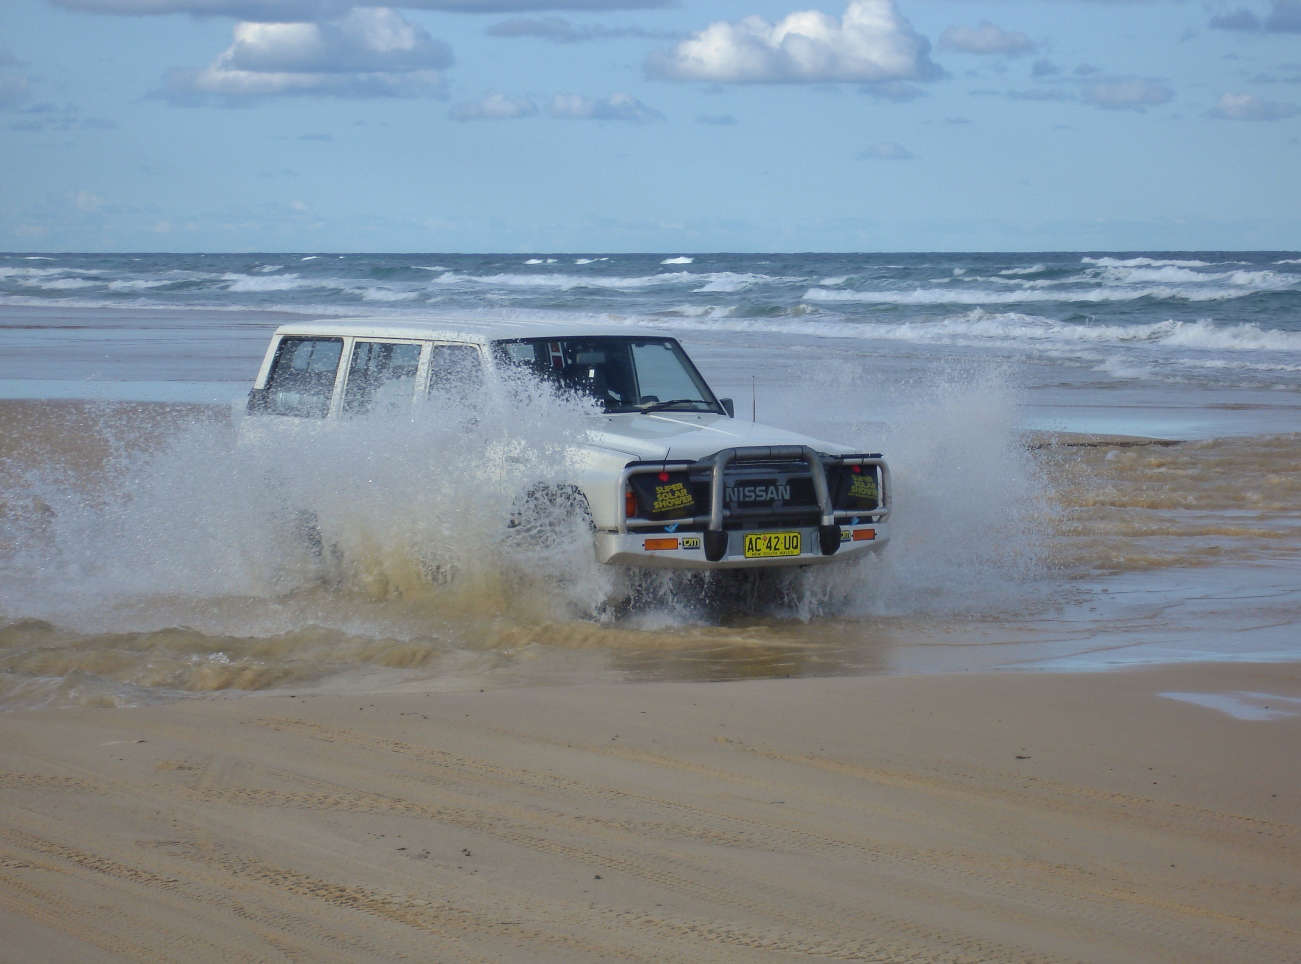 Crossing a little creek on Fraser Island's 75 mile Beach